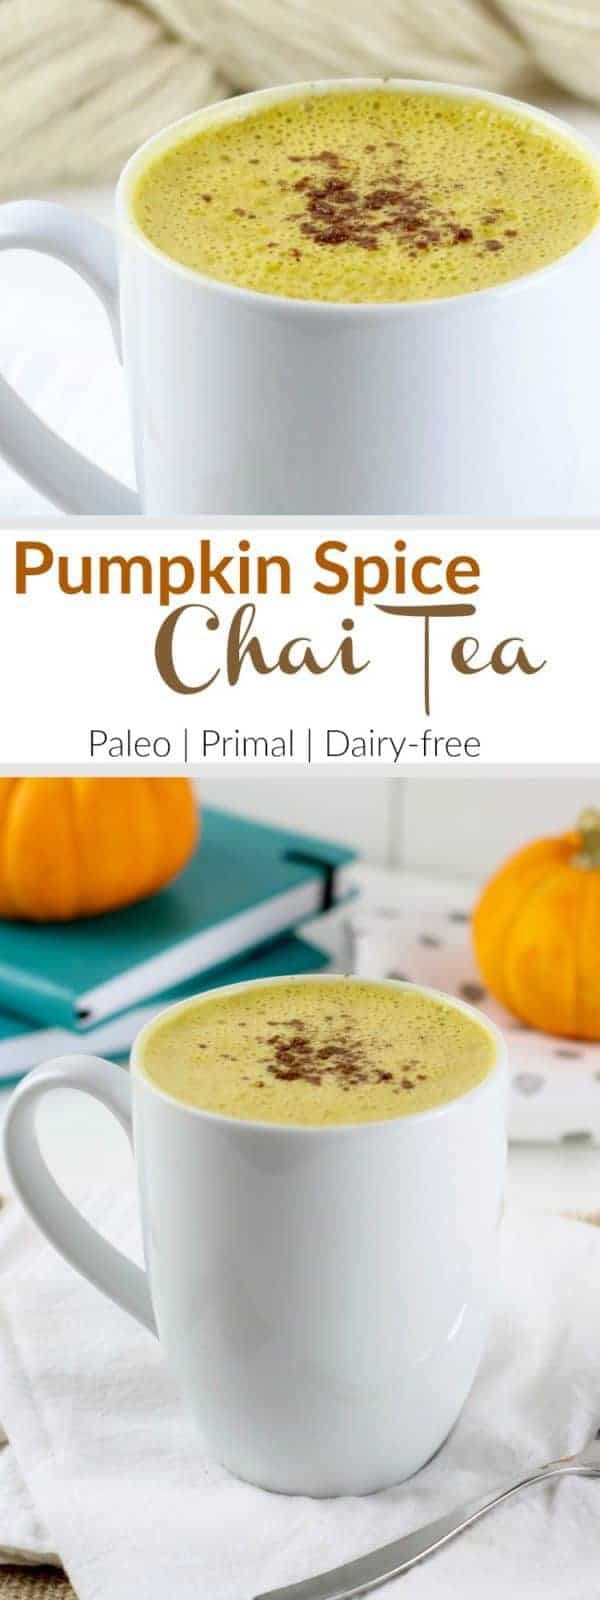 Pumpkin Spice Chai Tea | Fragrant and warming chai tea is blended with creamy almond milk, ghee and coconut butter to give it a subtly sweet and ultra creamy texture - then taken over the top with pumpkin and spices for a satisfying treat any time of day | The Real Food Dietitians | http://therealfoodrds.com/pumpkin-spice-chai-tea/